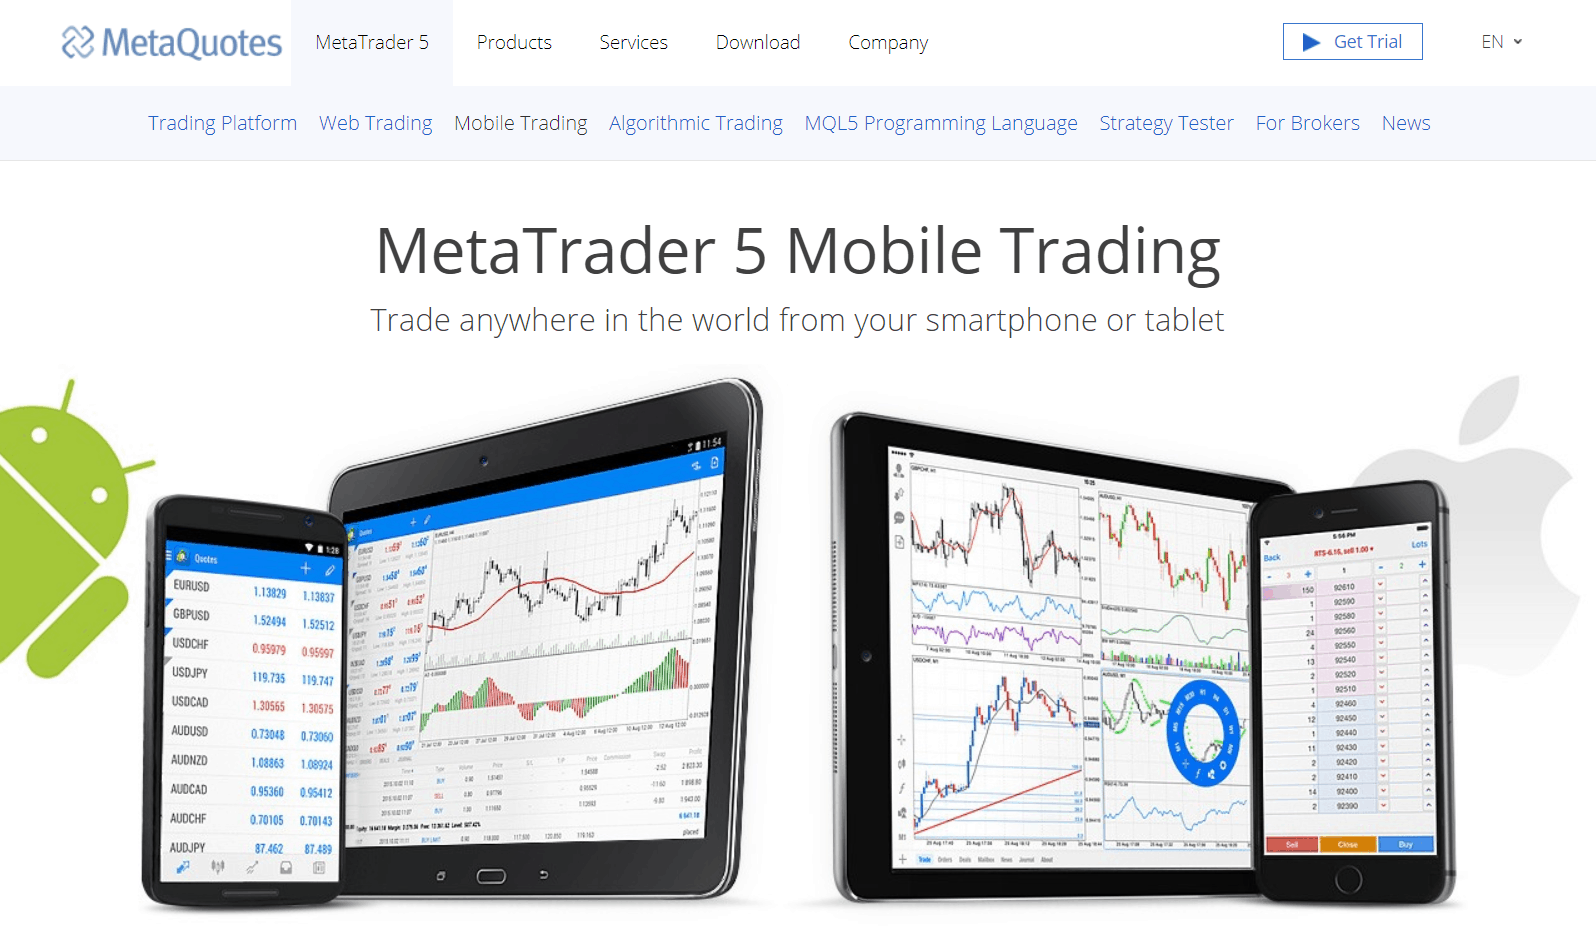 metatrader5 on Markets.com